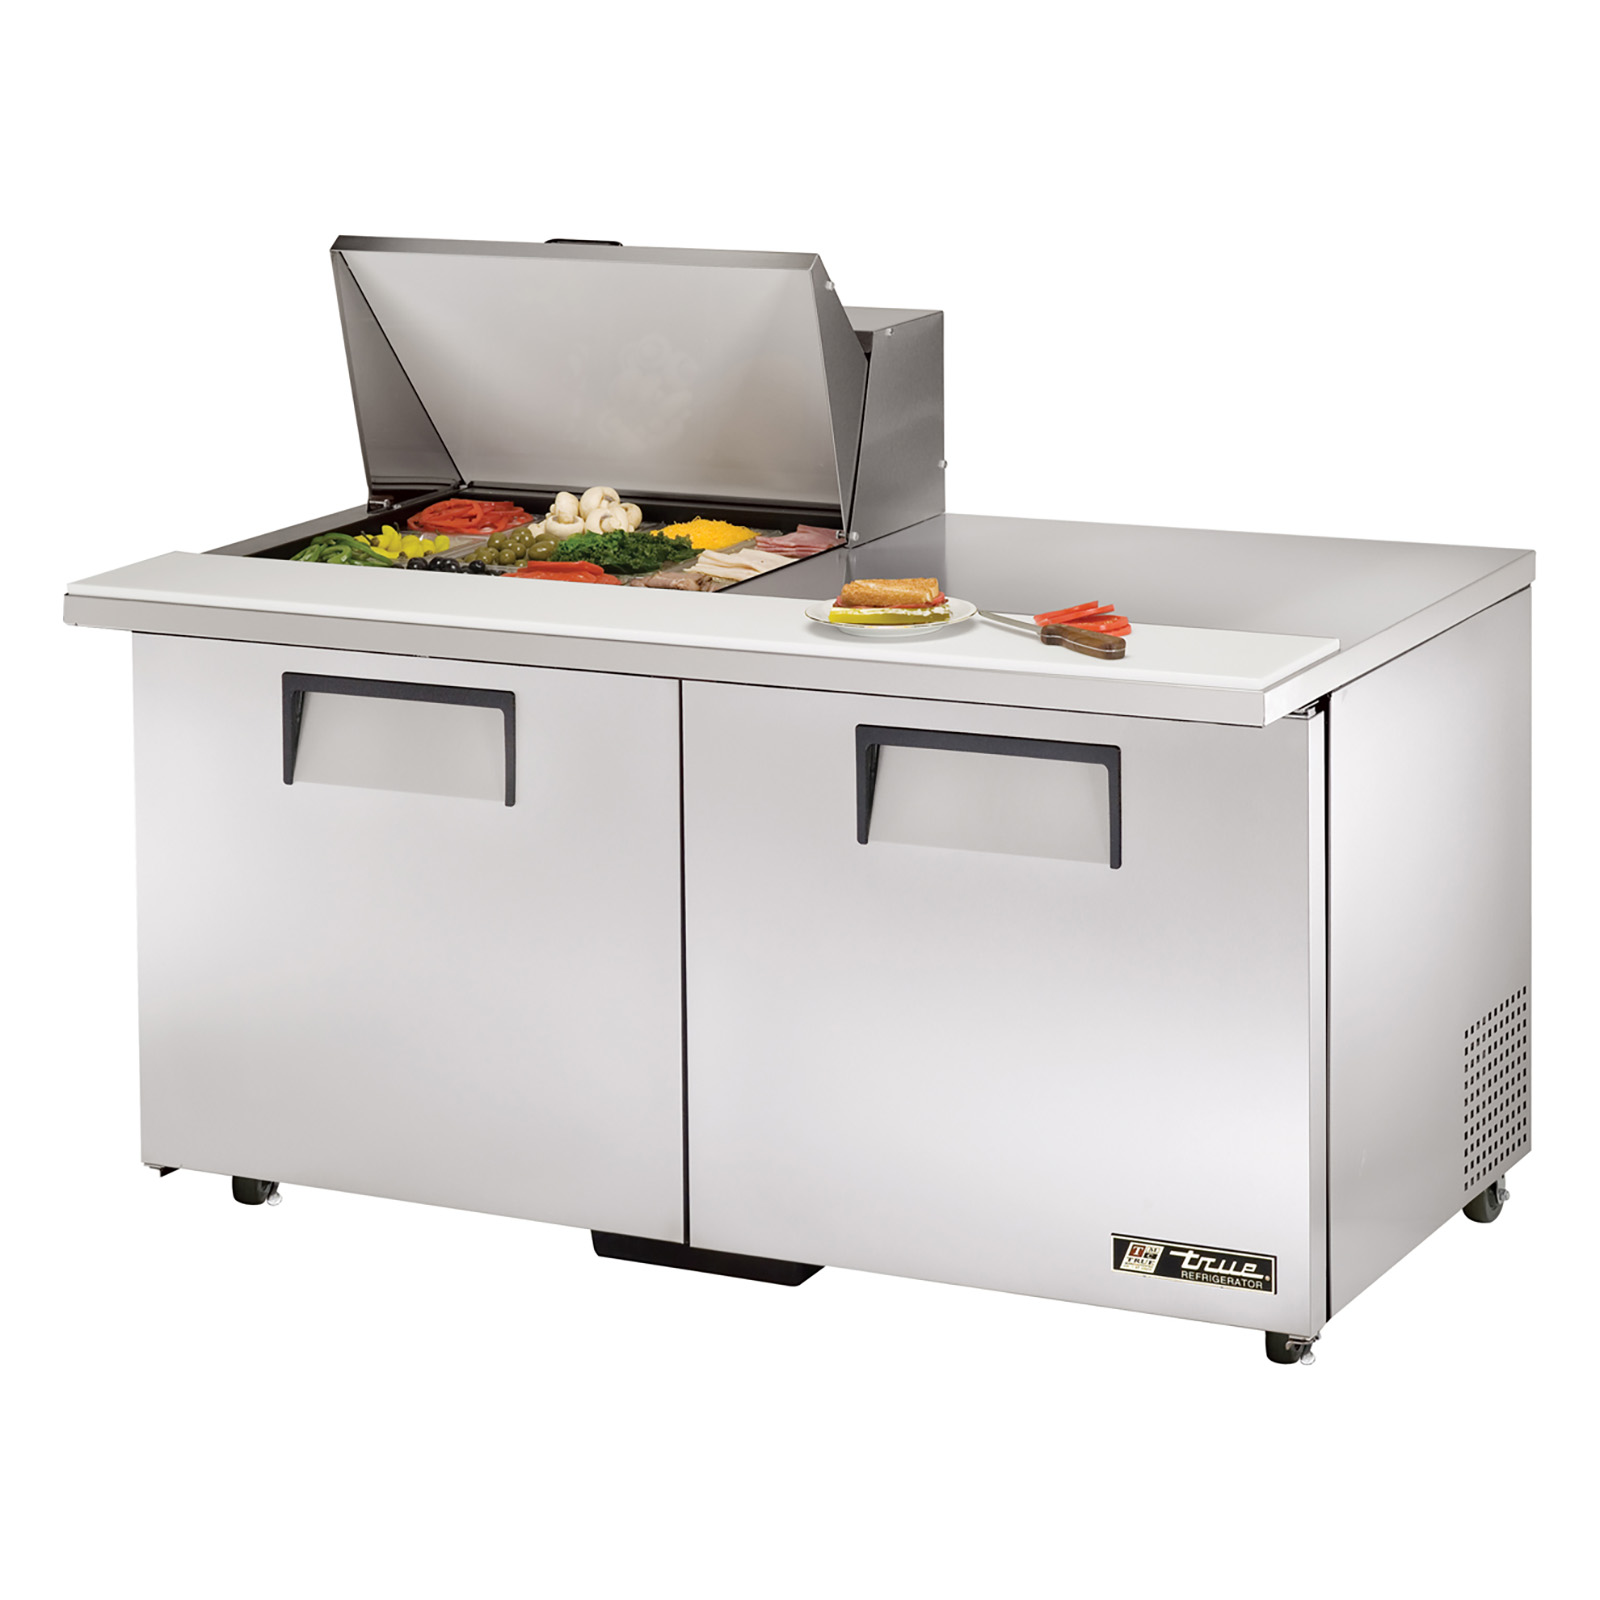 TSSU-60-12M-B-ADA True - ADA Compliant Mega Top Sandwich/Salad Unit (12) 1/6 size (4